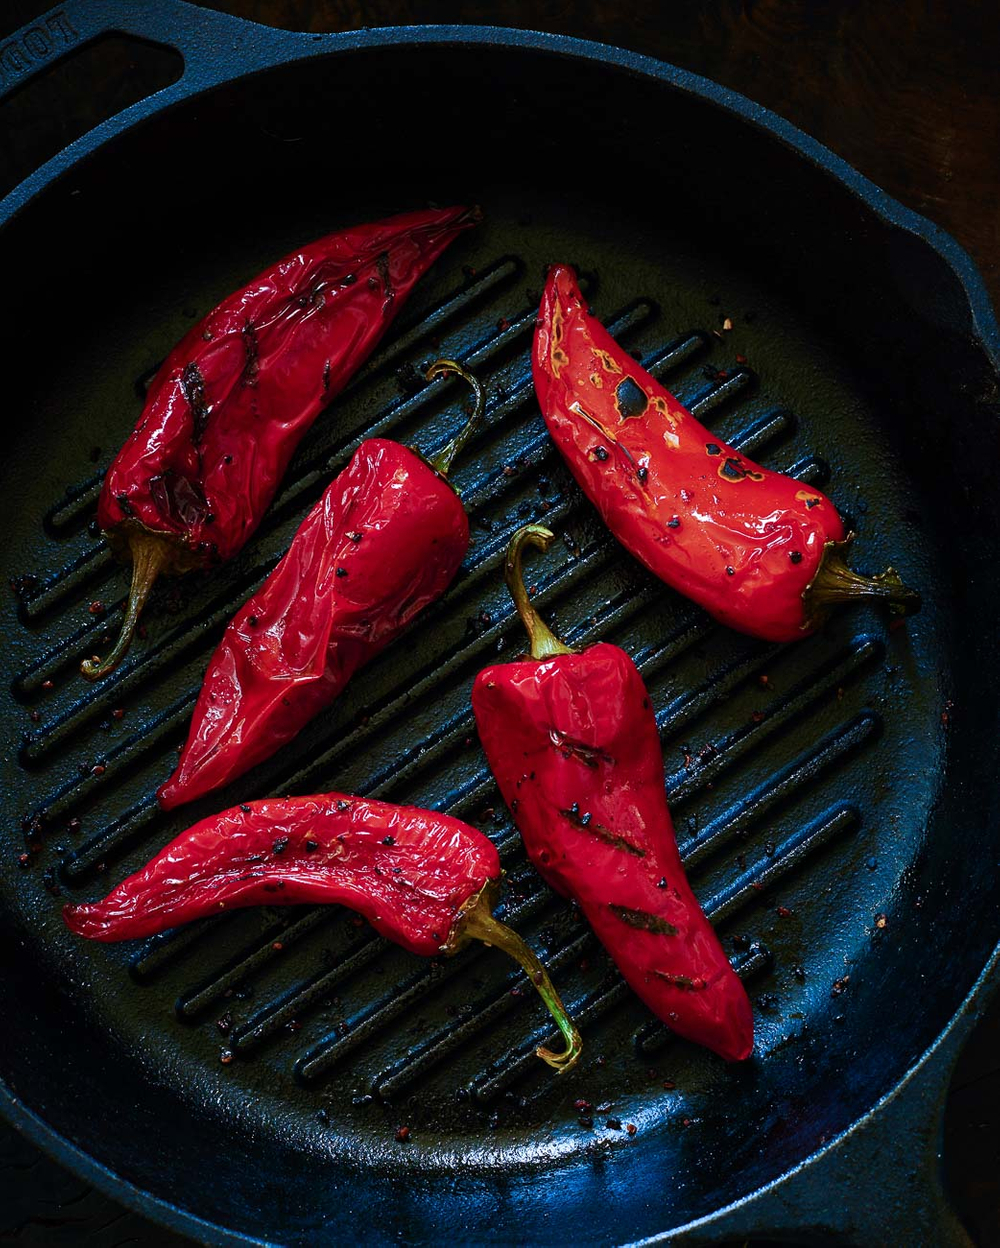 grilled-red-fresno-peppers-food-stylist-san-francisco.jpg